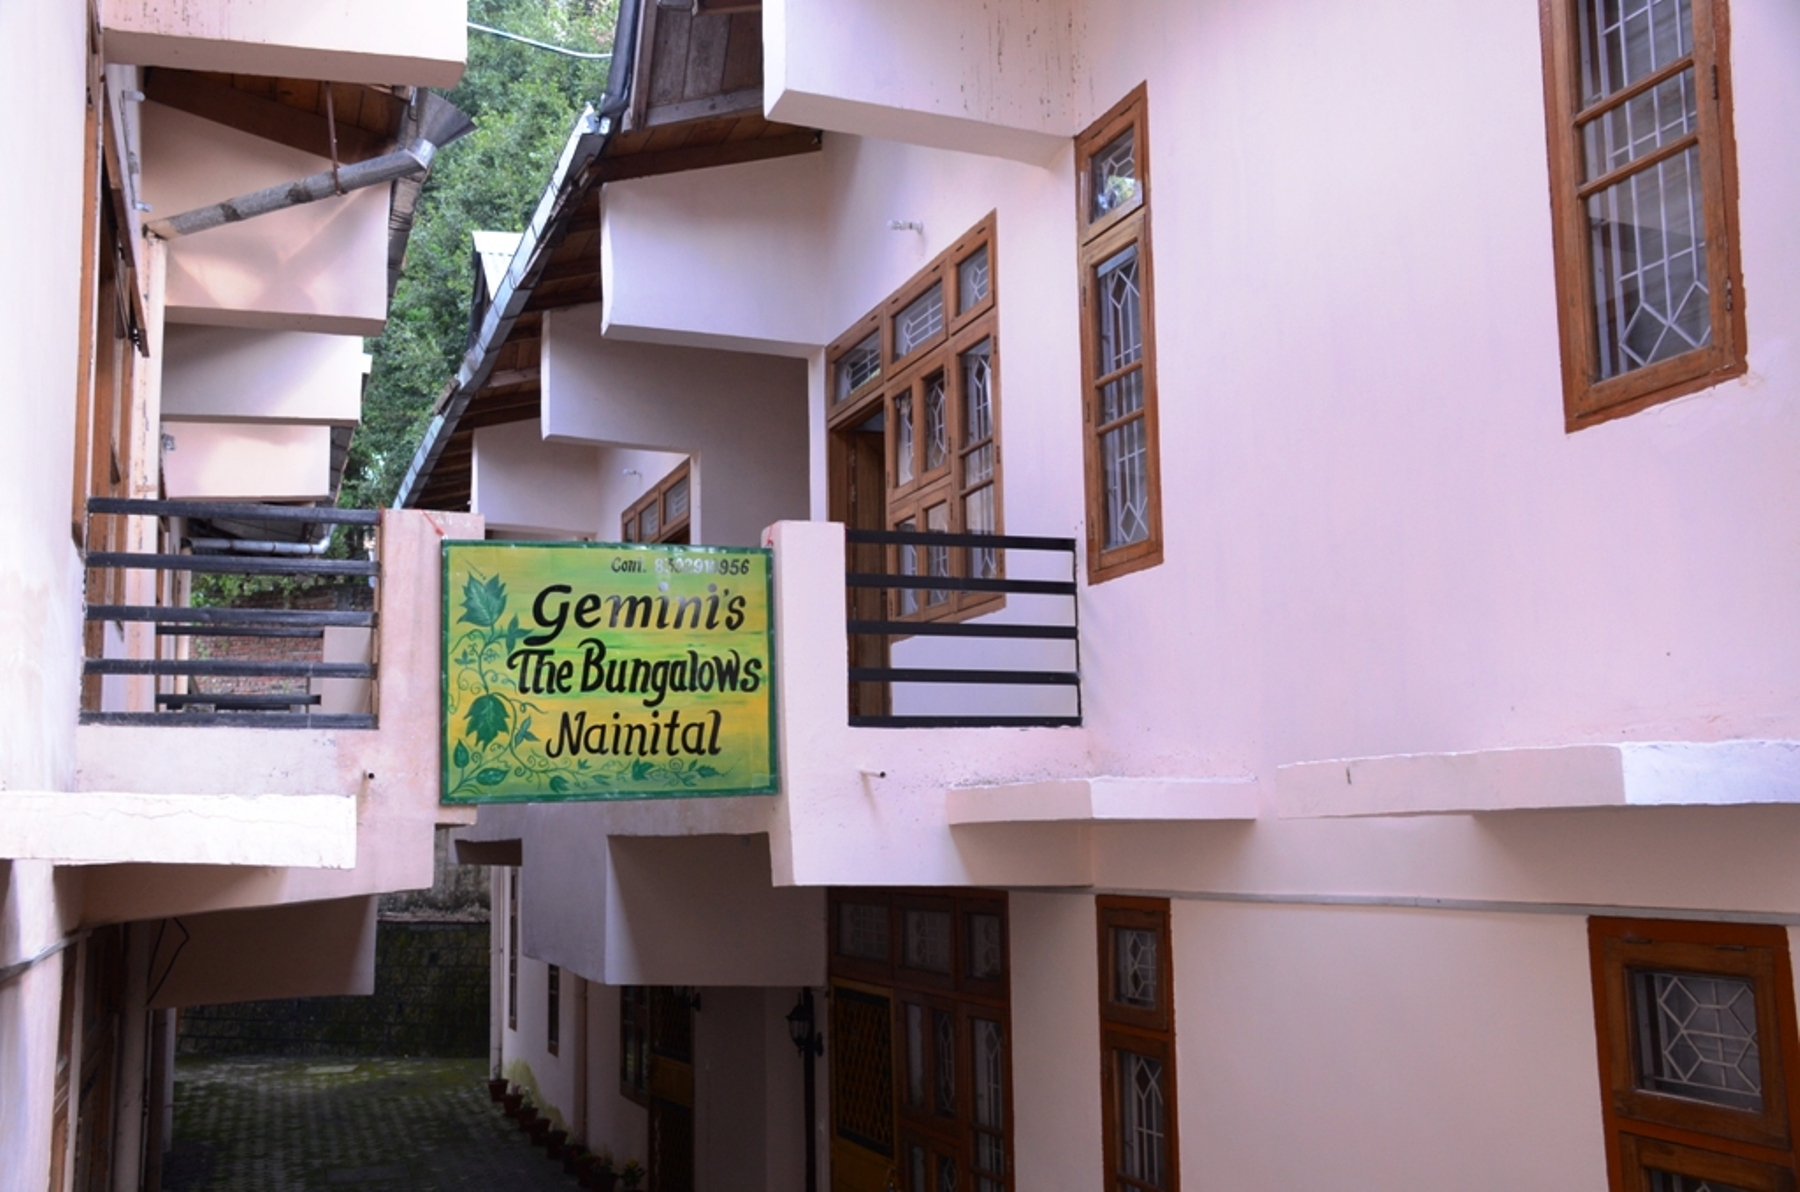 The Bungalows, Nainital